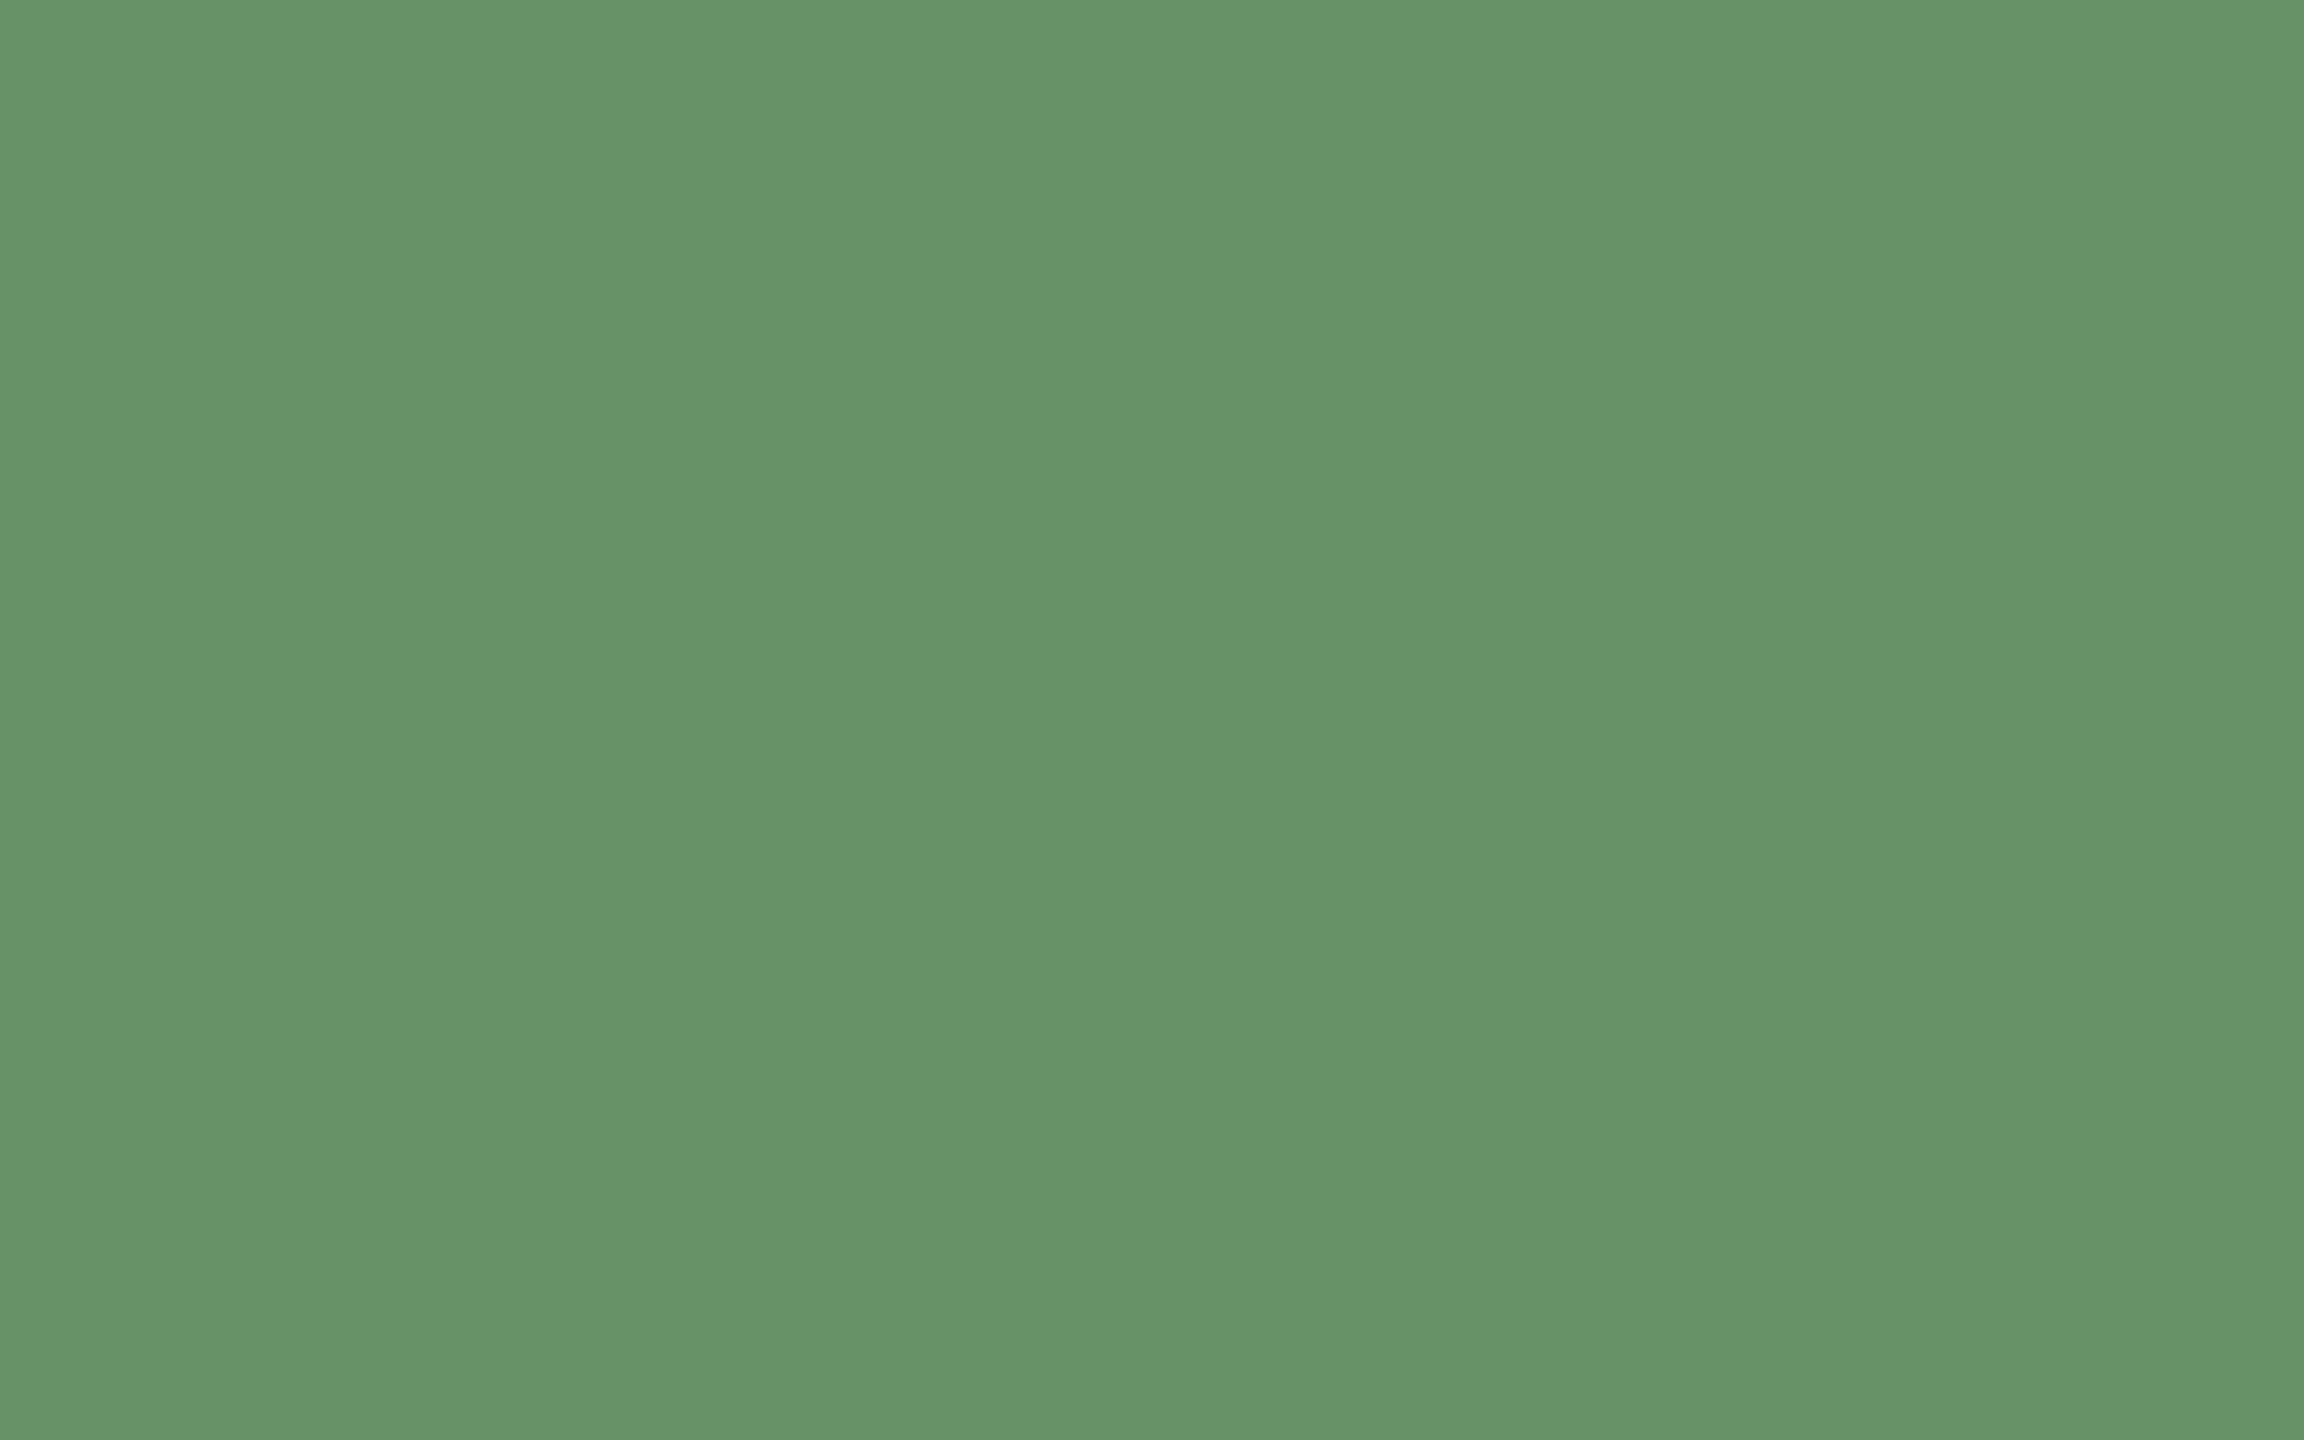 2304x1440 Russian Green Solid Color Background